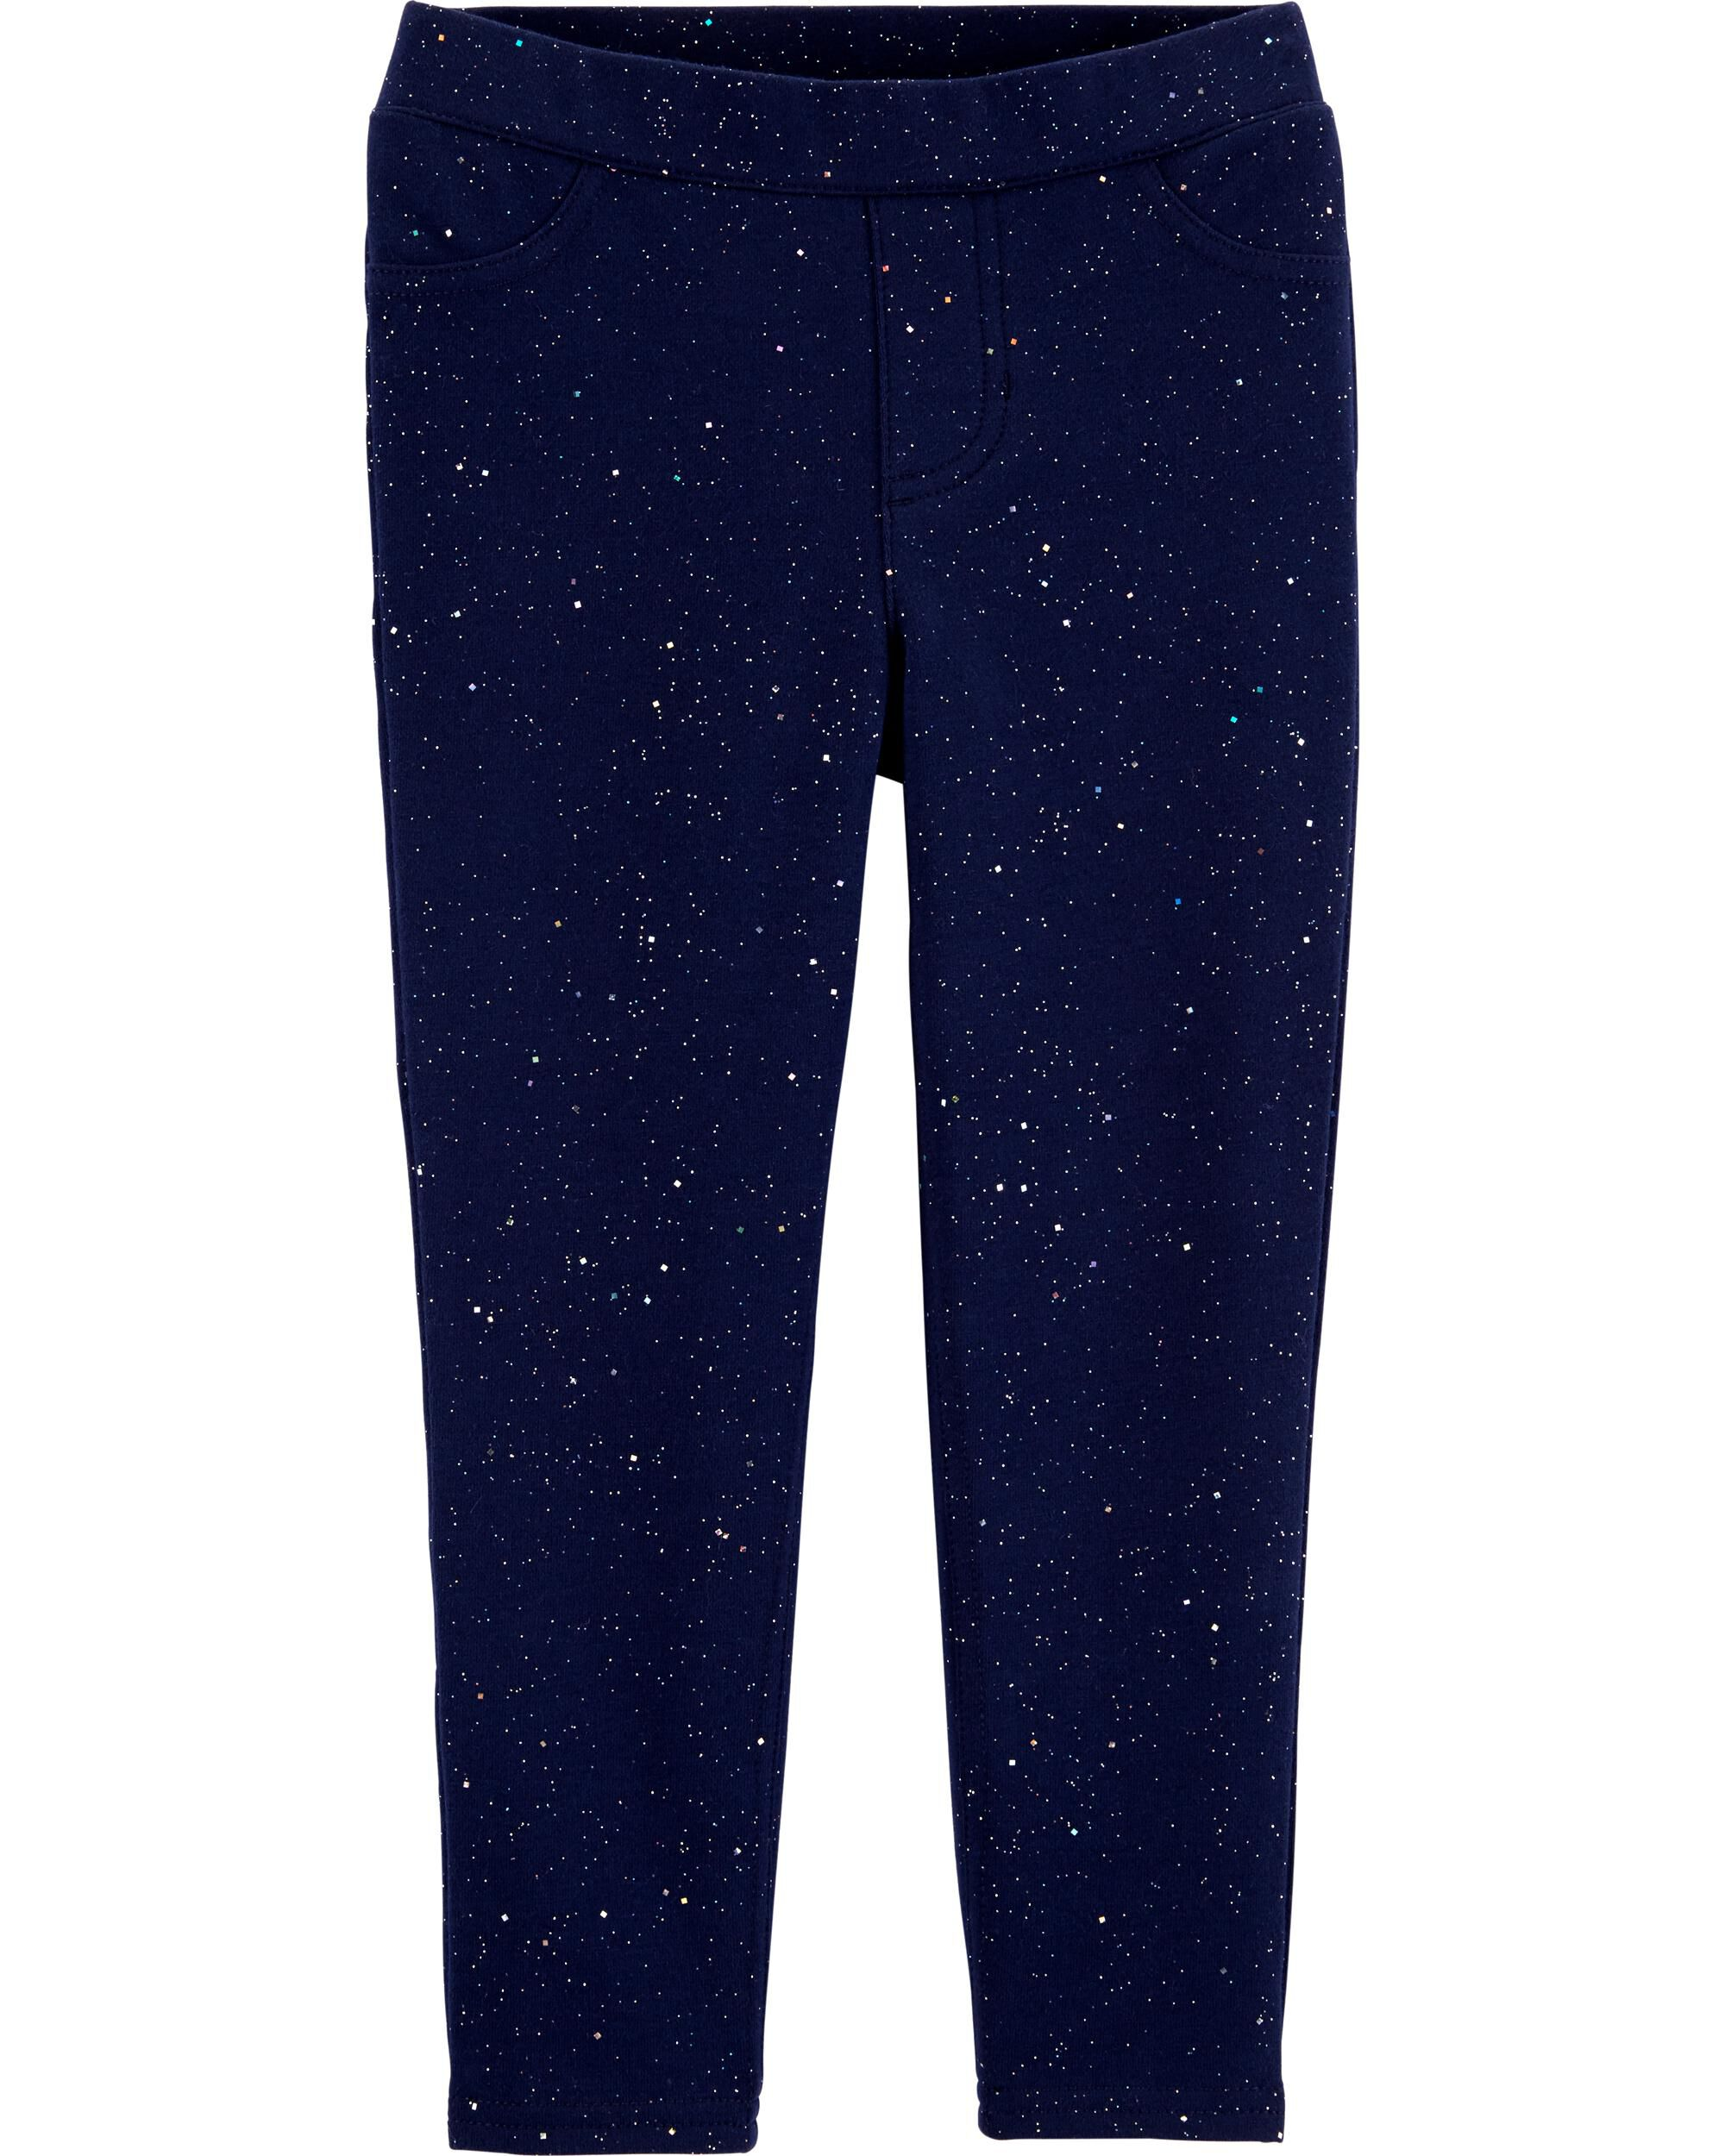 *CLEARANCE*Sparkly Pull-On French Terry Jeggings